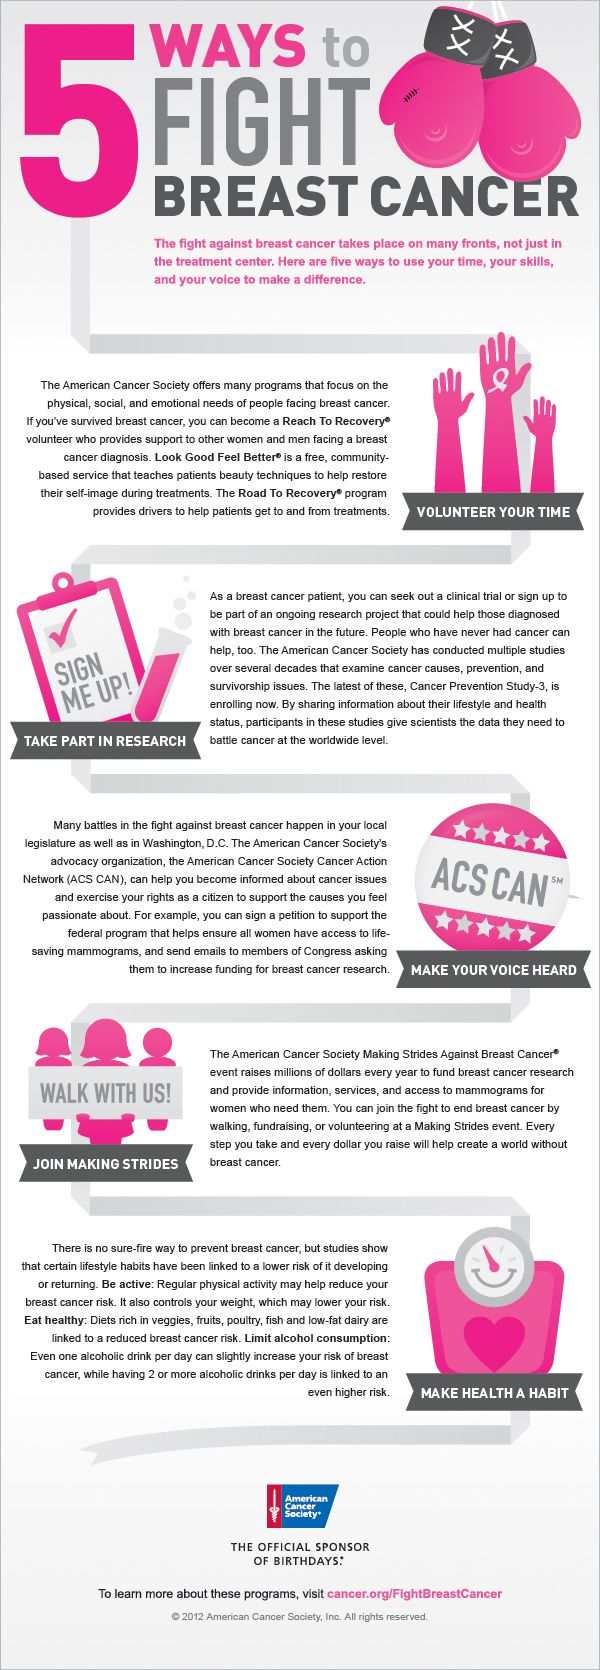 18 best breast cancer infographics images on pinterest breast in honor of breast cancer awareness month here are 5 ways to fight breast cancer infographic from the american cancer society the official sponsor of toneelgroepblik Choice Image